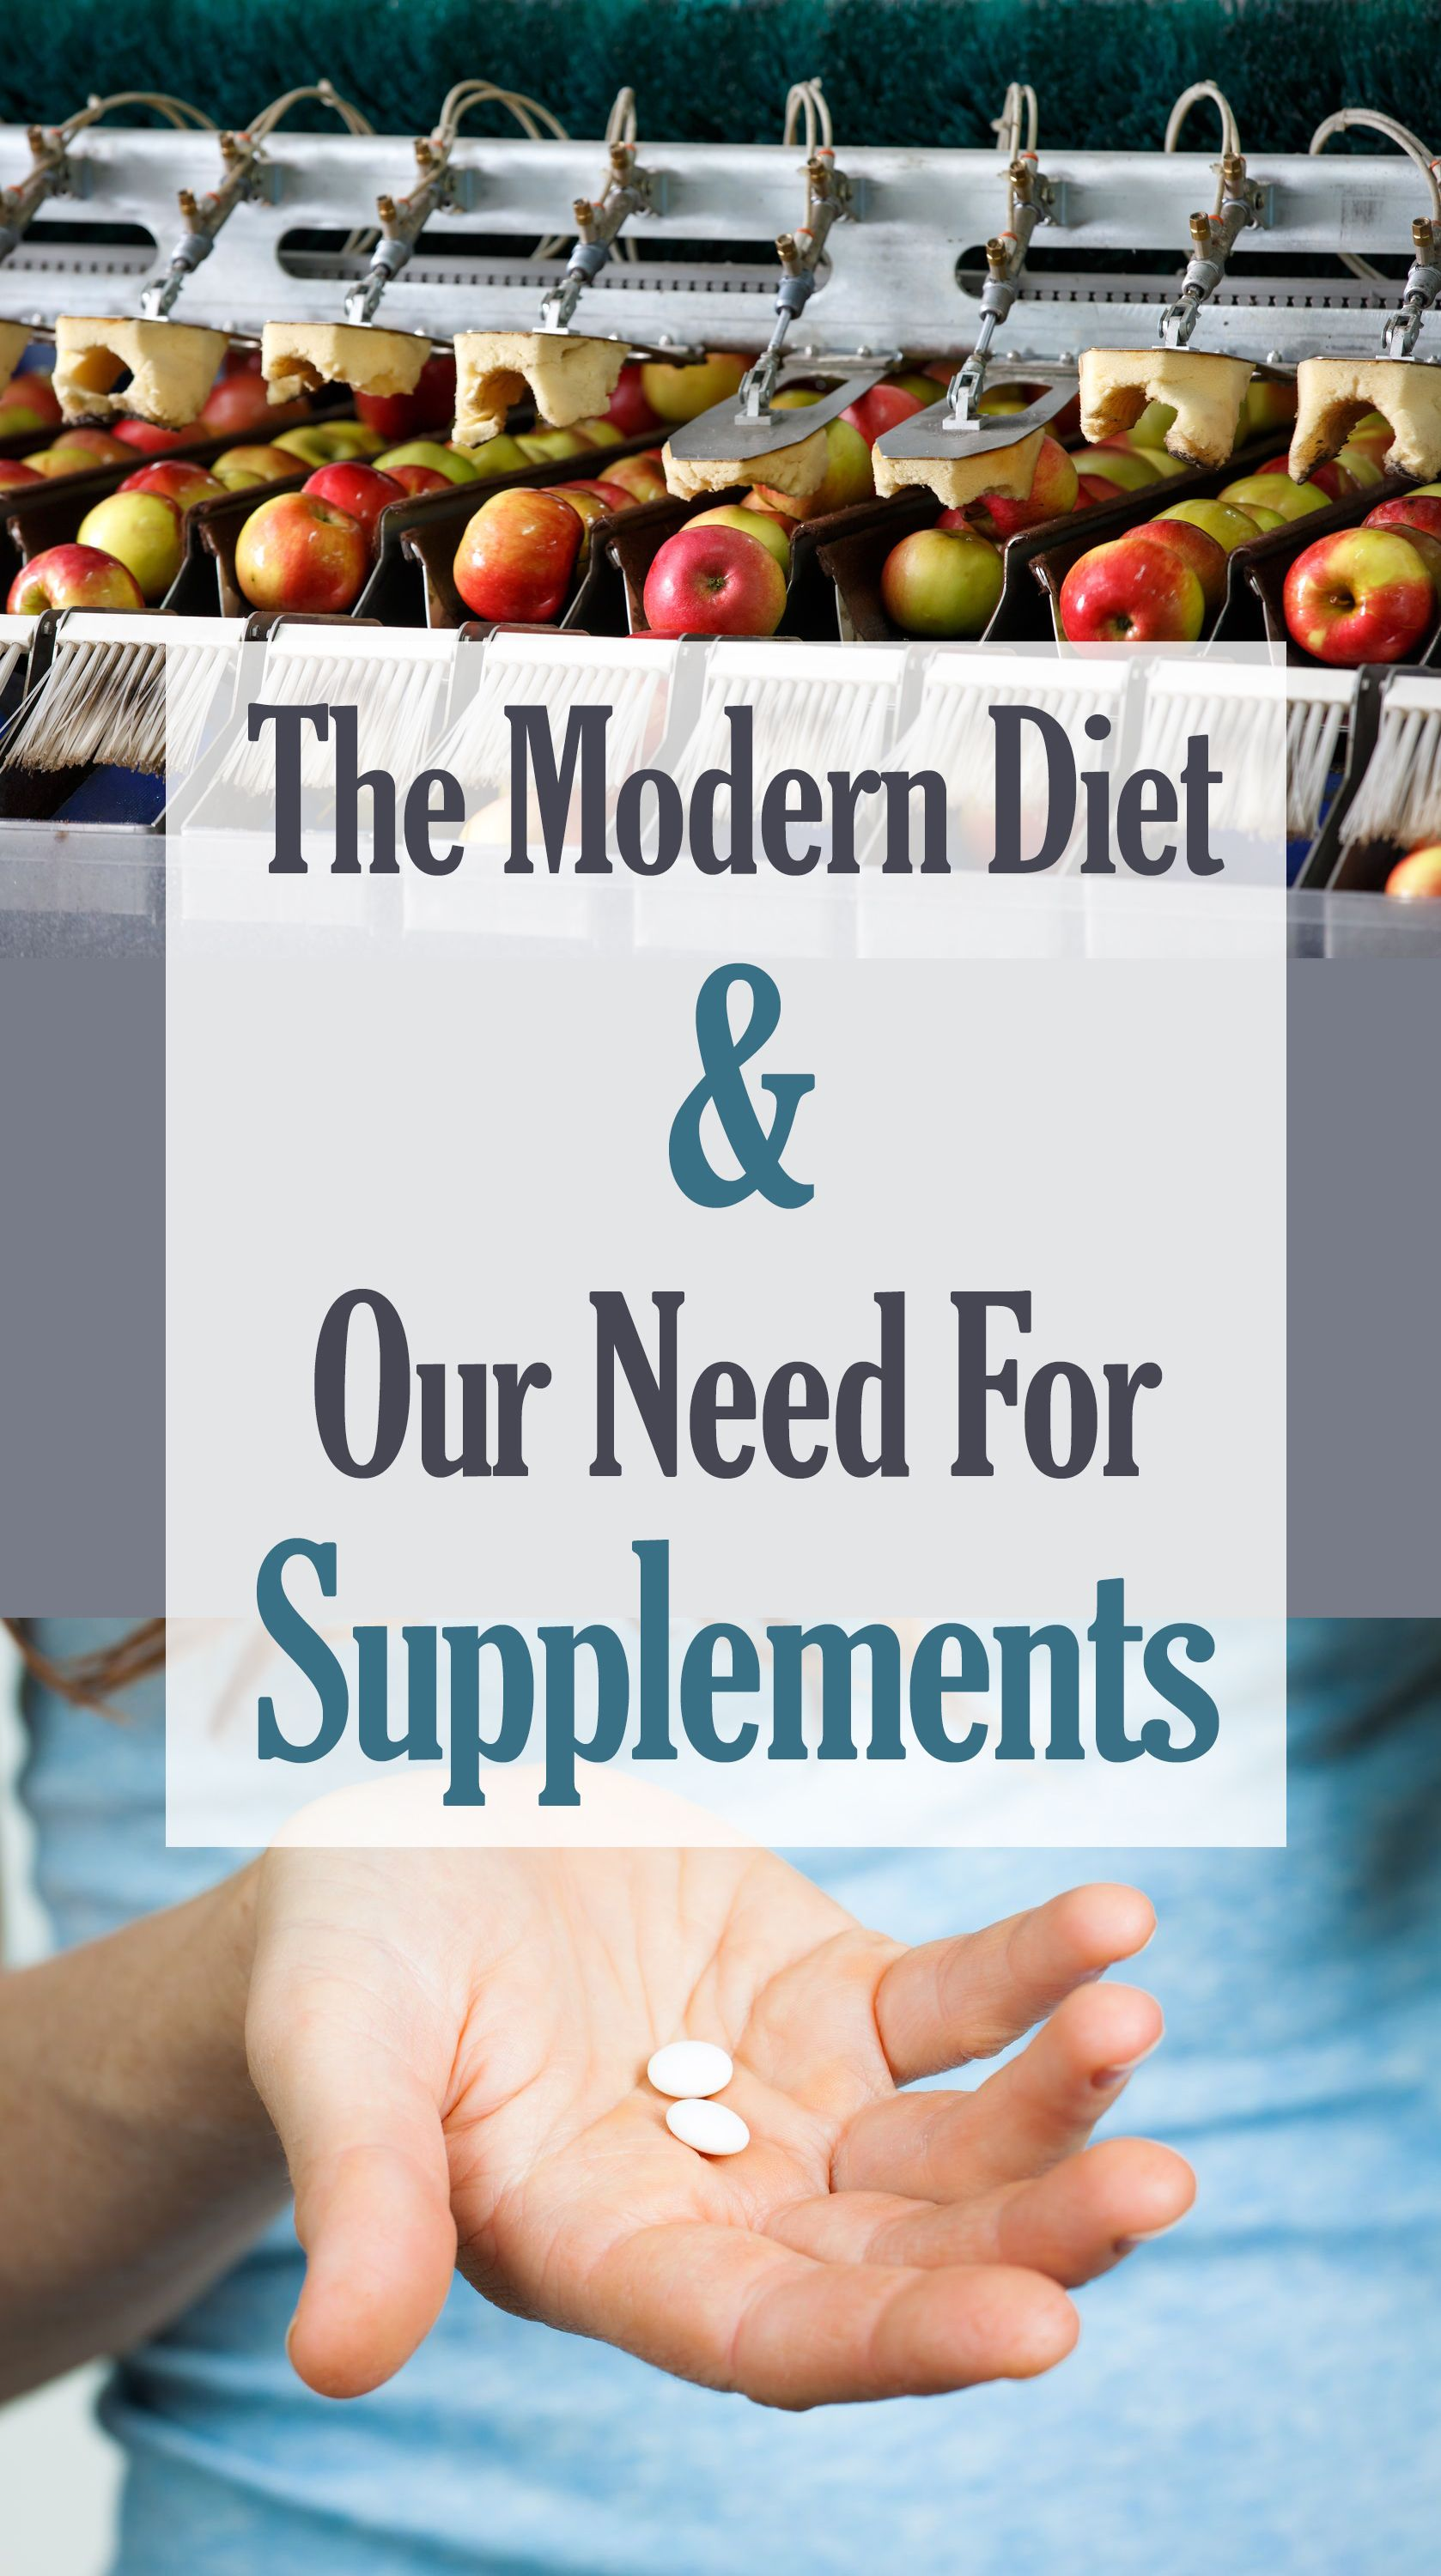 Whilst supplements aren't meant to replace a nutritious